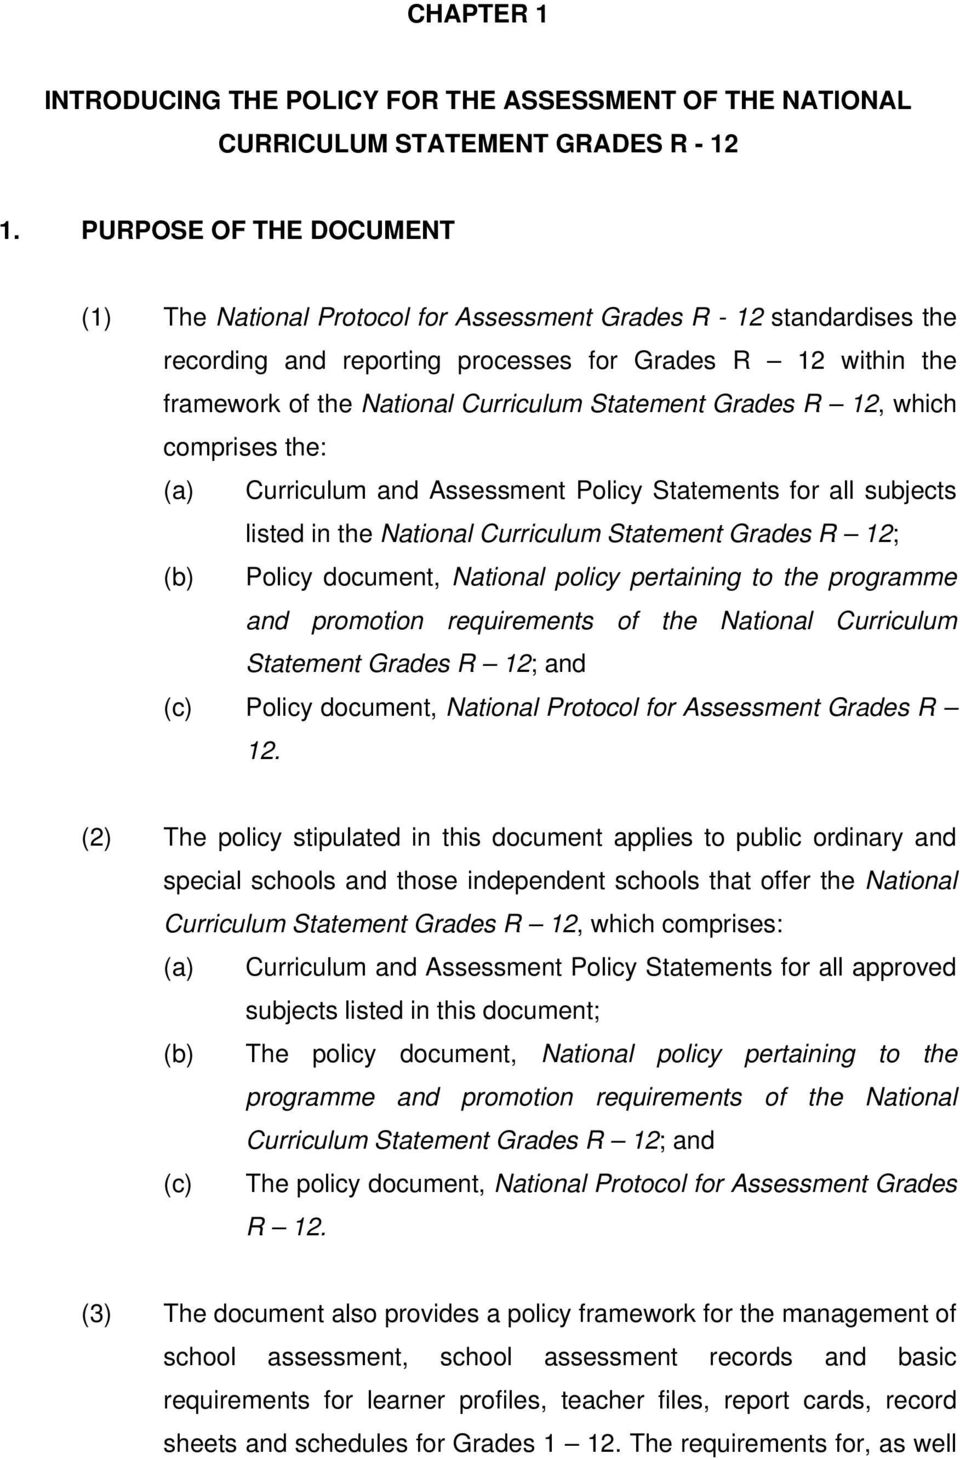 Statement Grades R 12, which comprises the: (a) Curriculum and Assessment Policy Statements for all subjects listed in the National Curriculum Statement Grades R 12; (b) Policy document, National